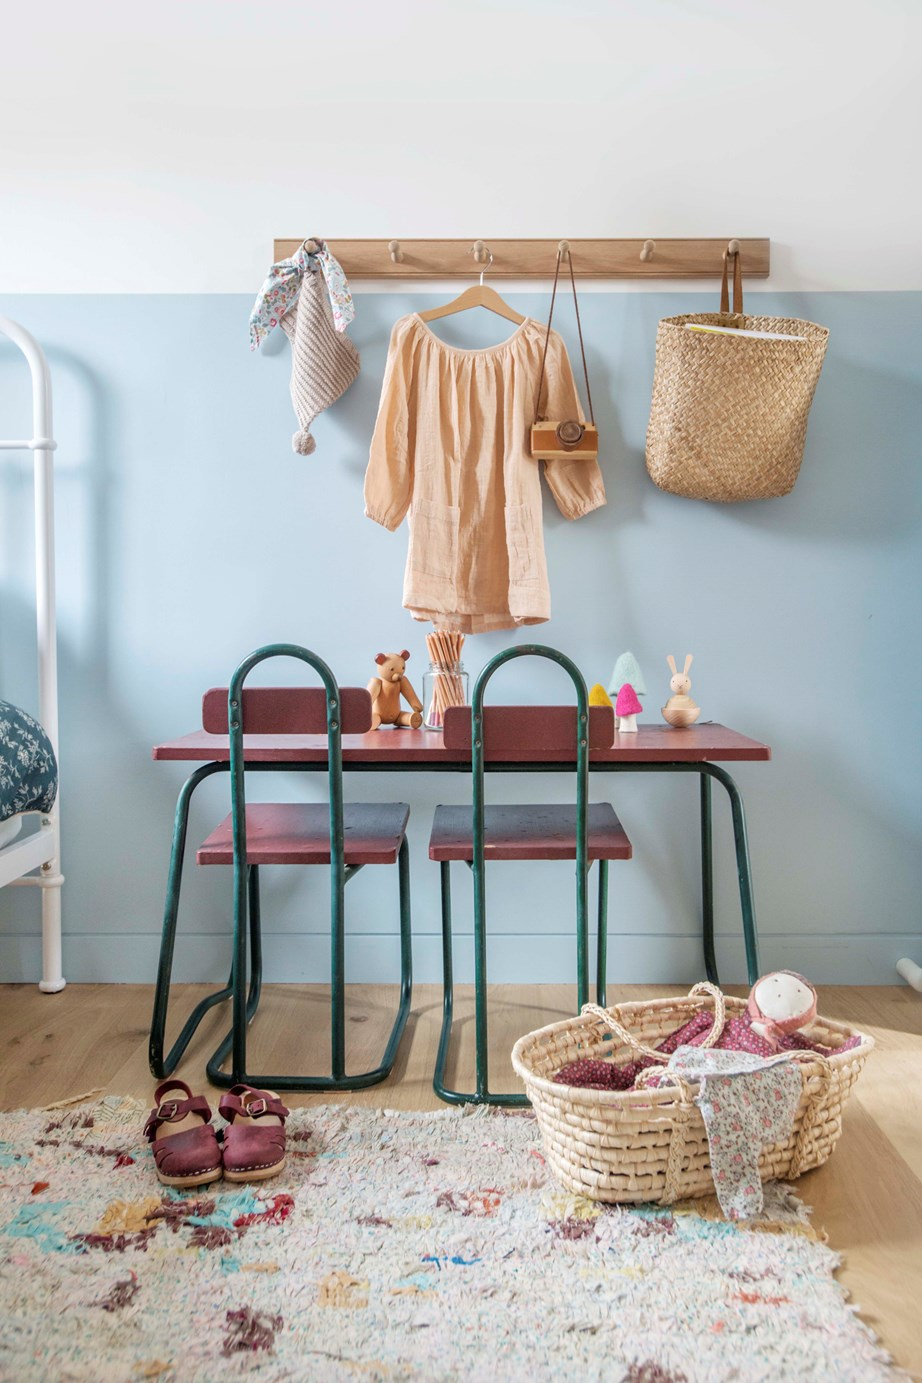 Create a play space within your child's bedroom using a small desk and chairs, wall hooks and storage baskets. A cosy, colourful rug ties it all together.